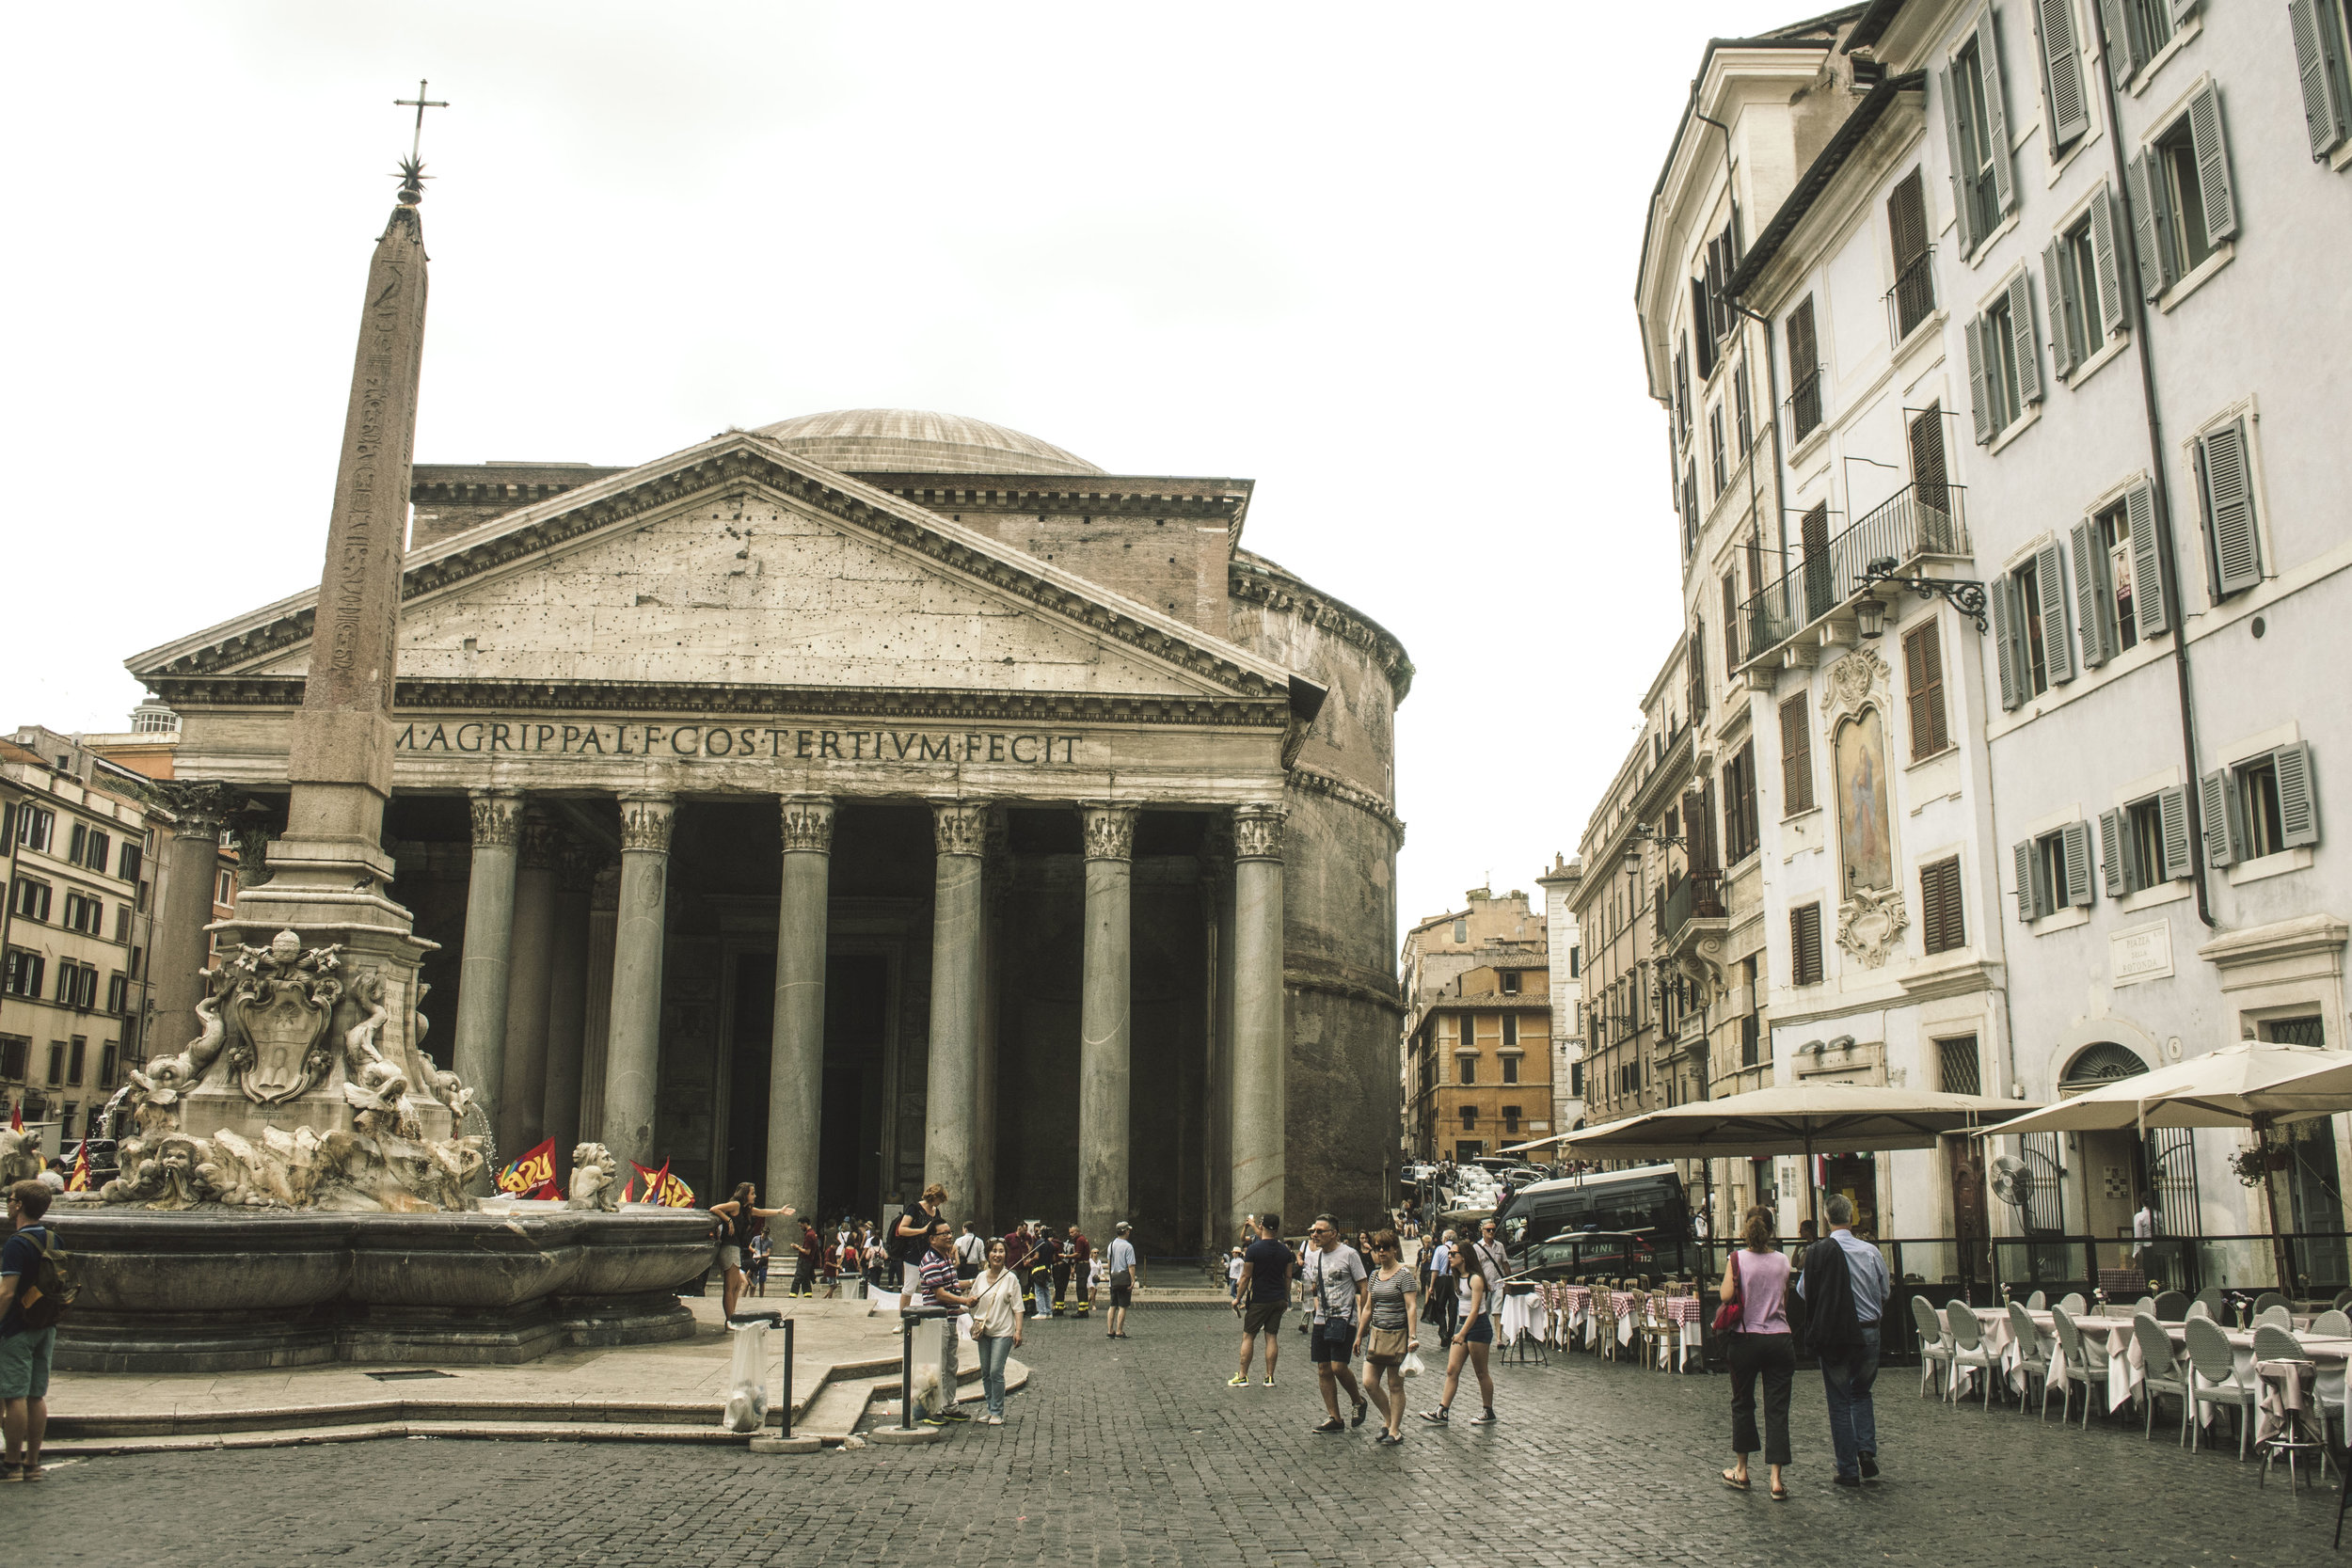 A visit to the Pantheon in Rome, Italy